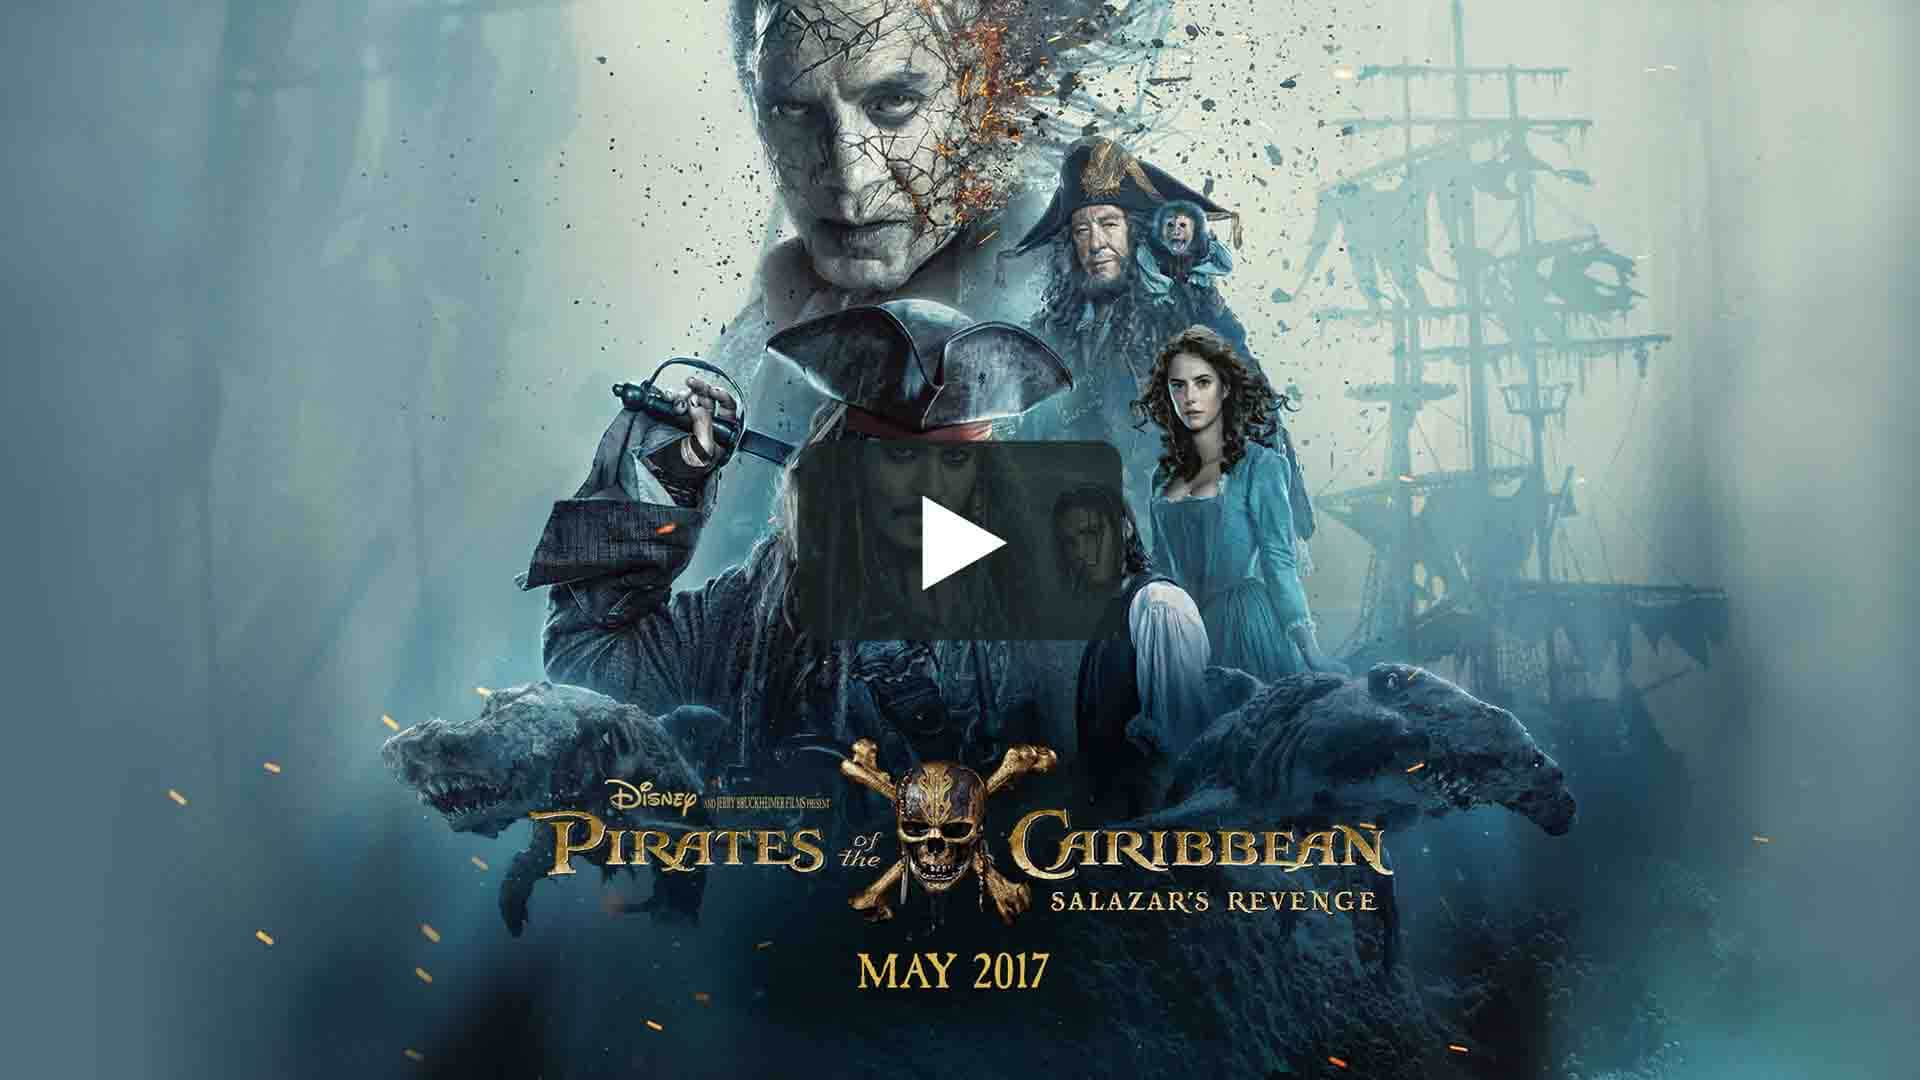 Pirates of the Caribbean : Dead Men Tell No Tales - 加勒比海盜5:死無對證